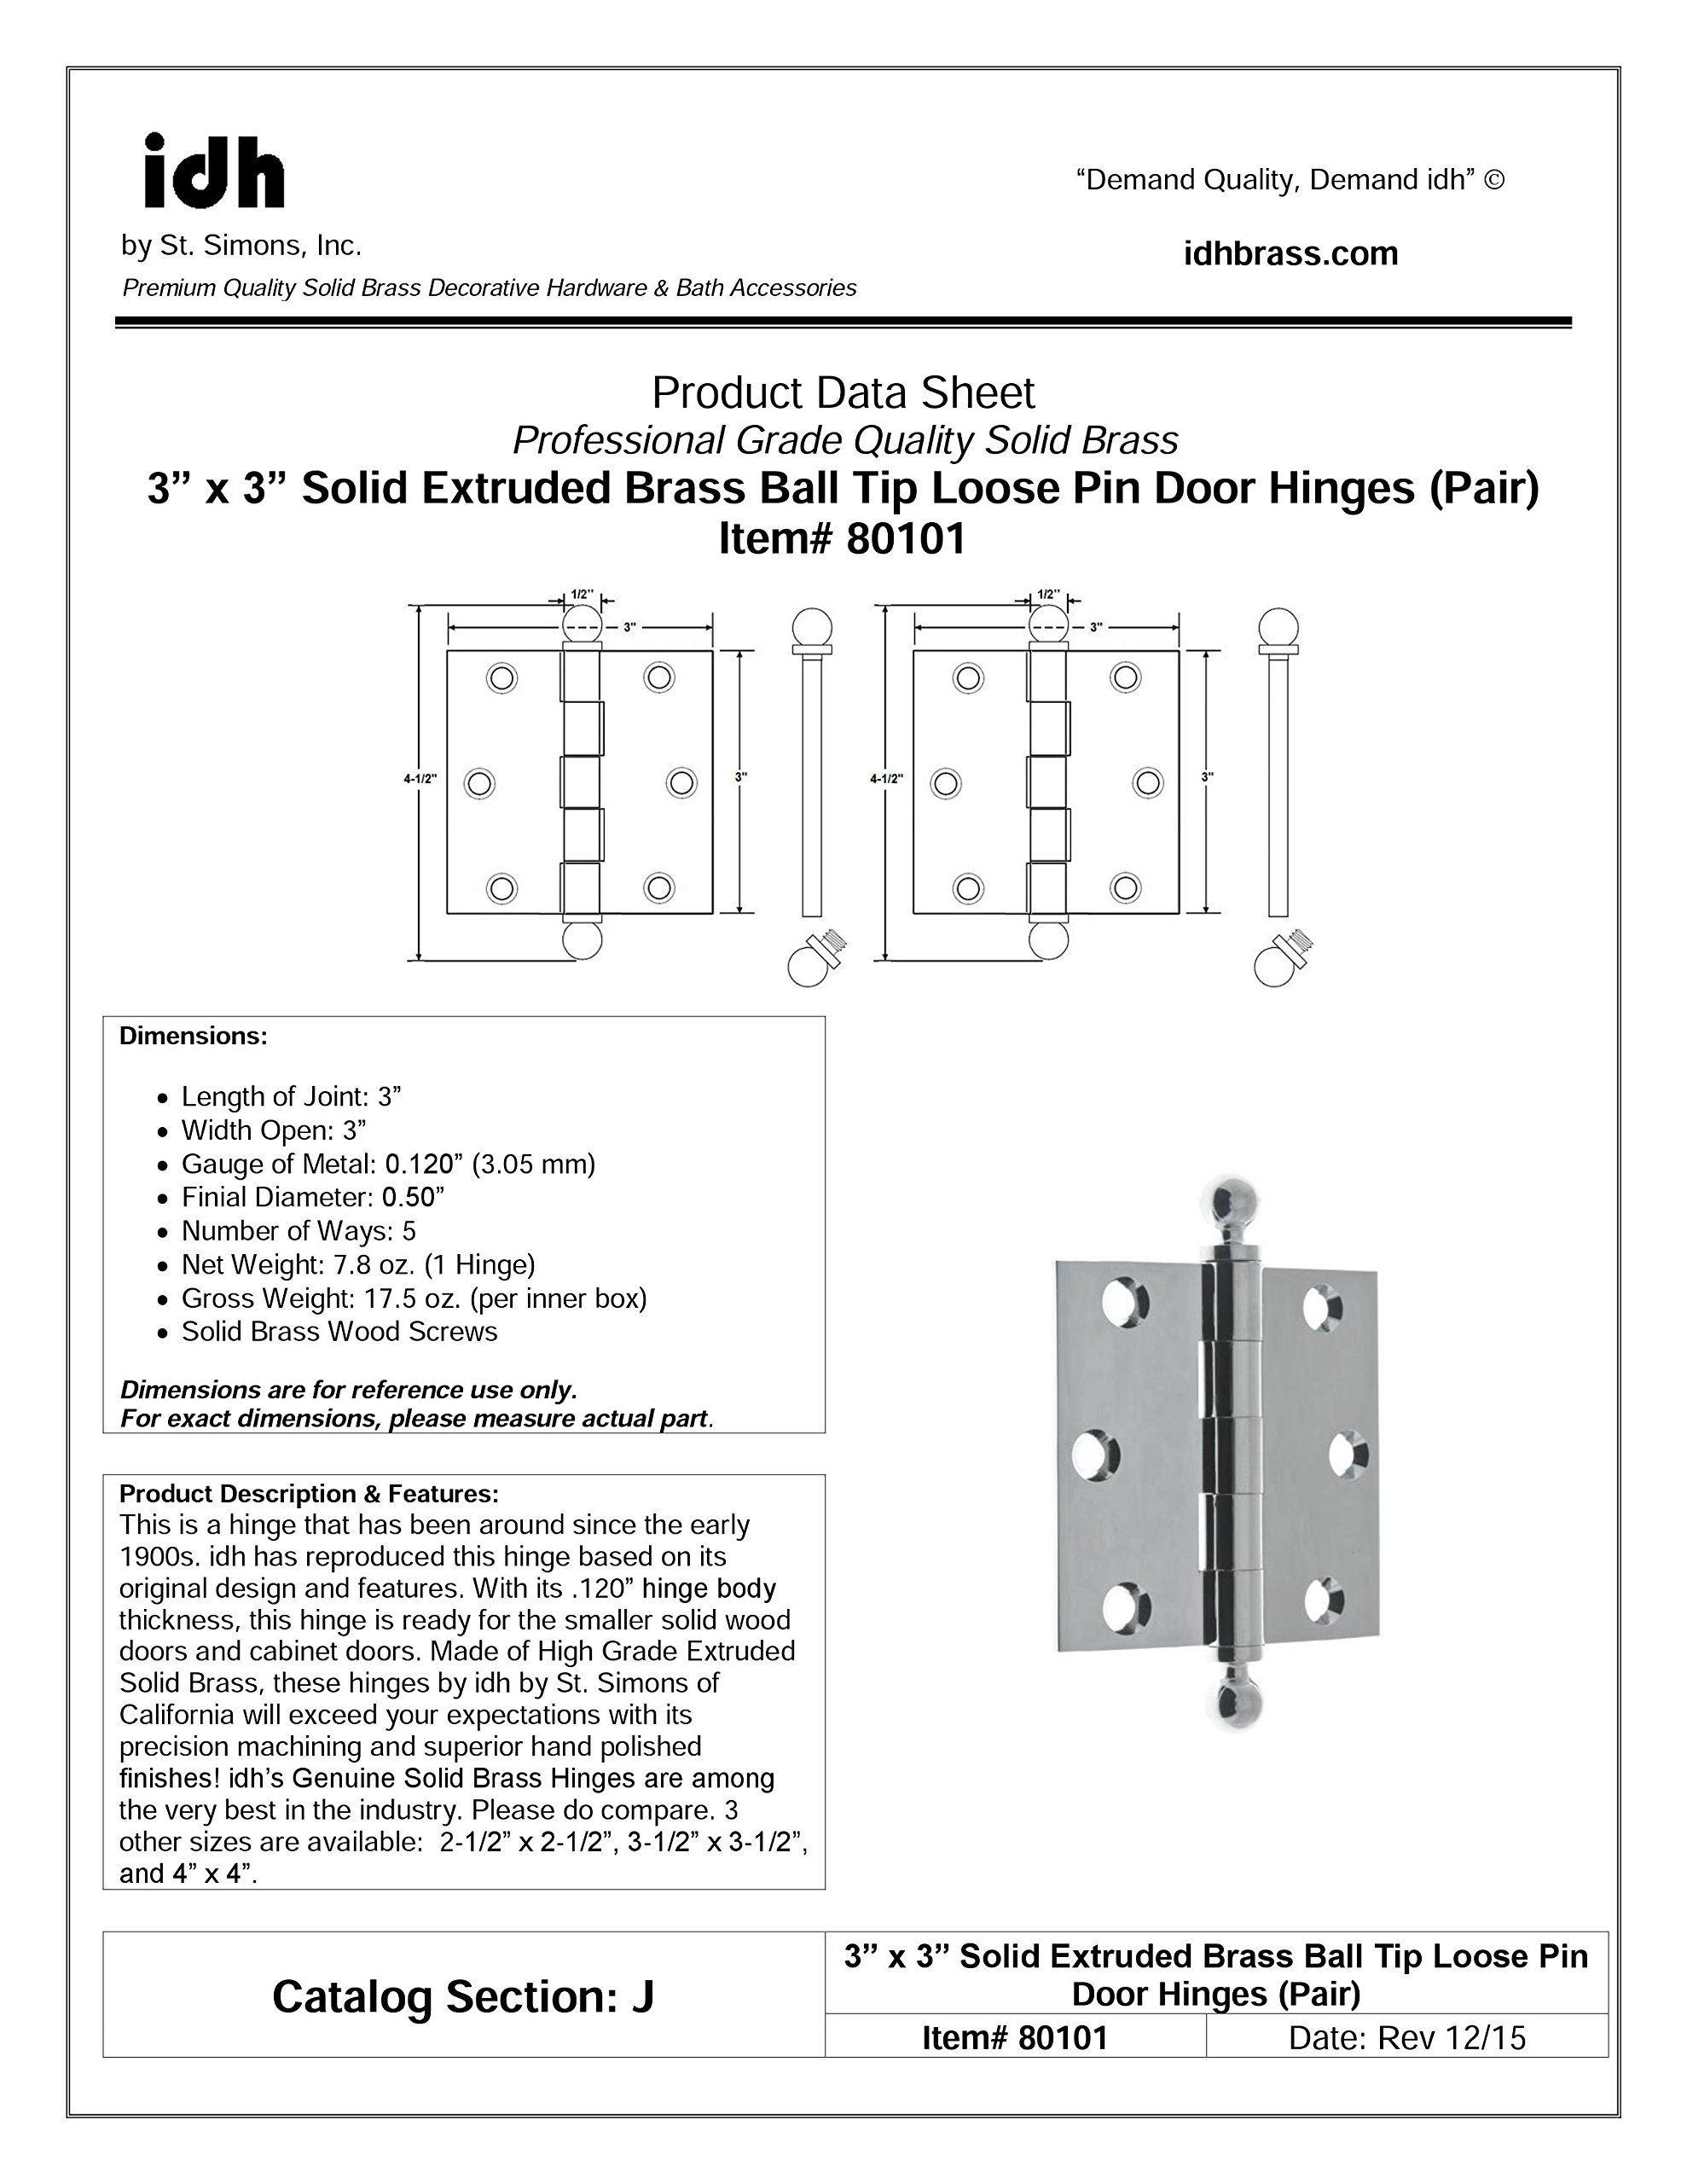 Professional Grade Quality Genuine Solid Brass 3'' x 3'' Loose Pin Hinges (Pair) by idh (Oil-Rubbed Bronze)